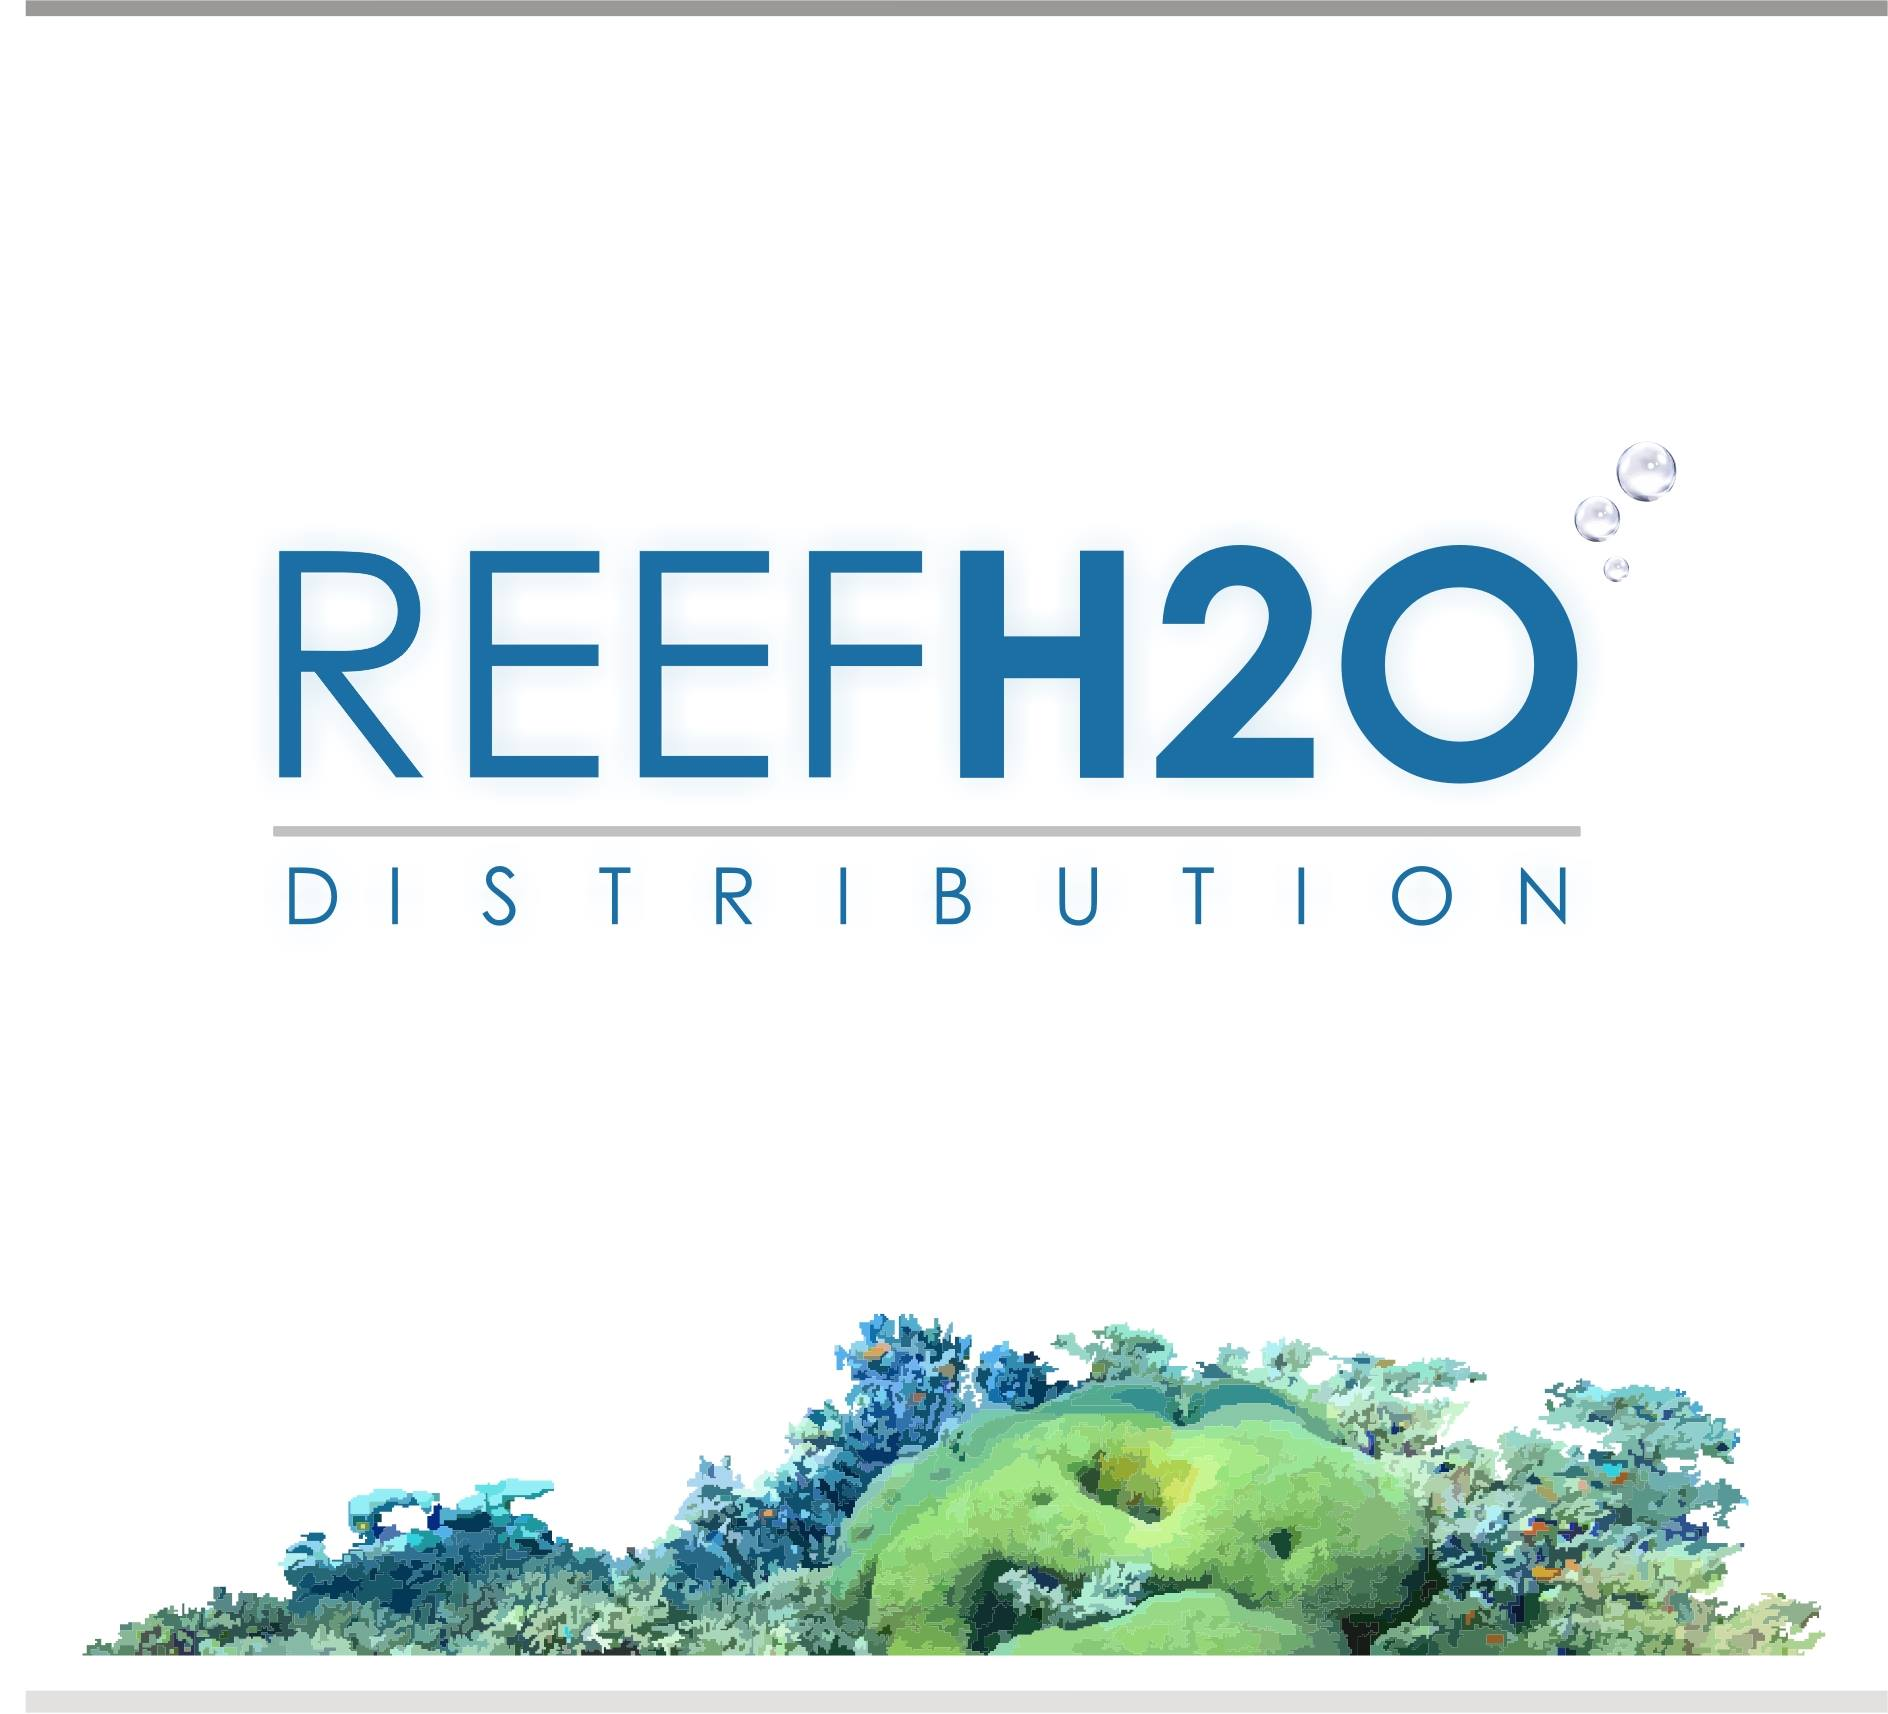 ReefH20 Distribution